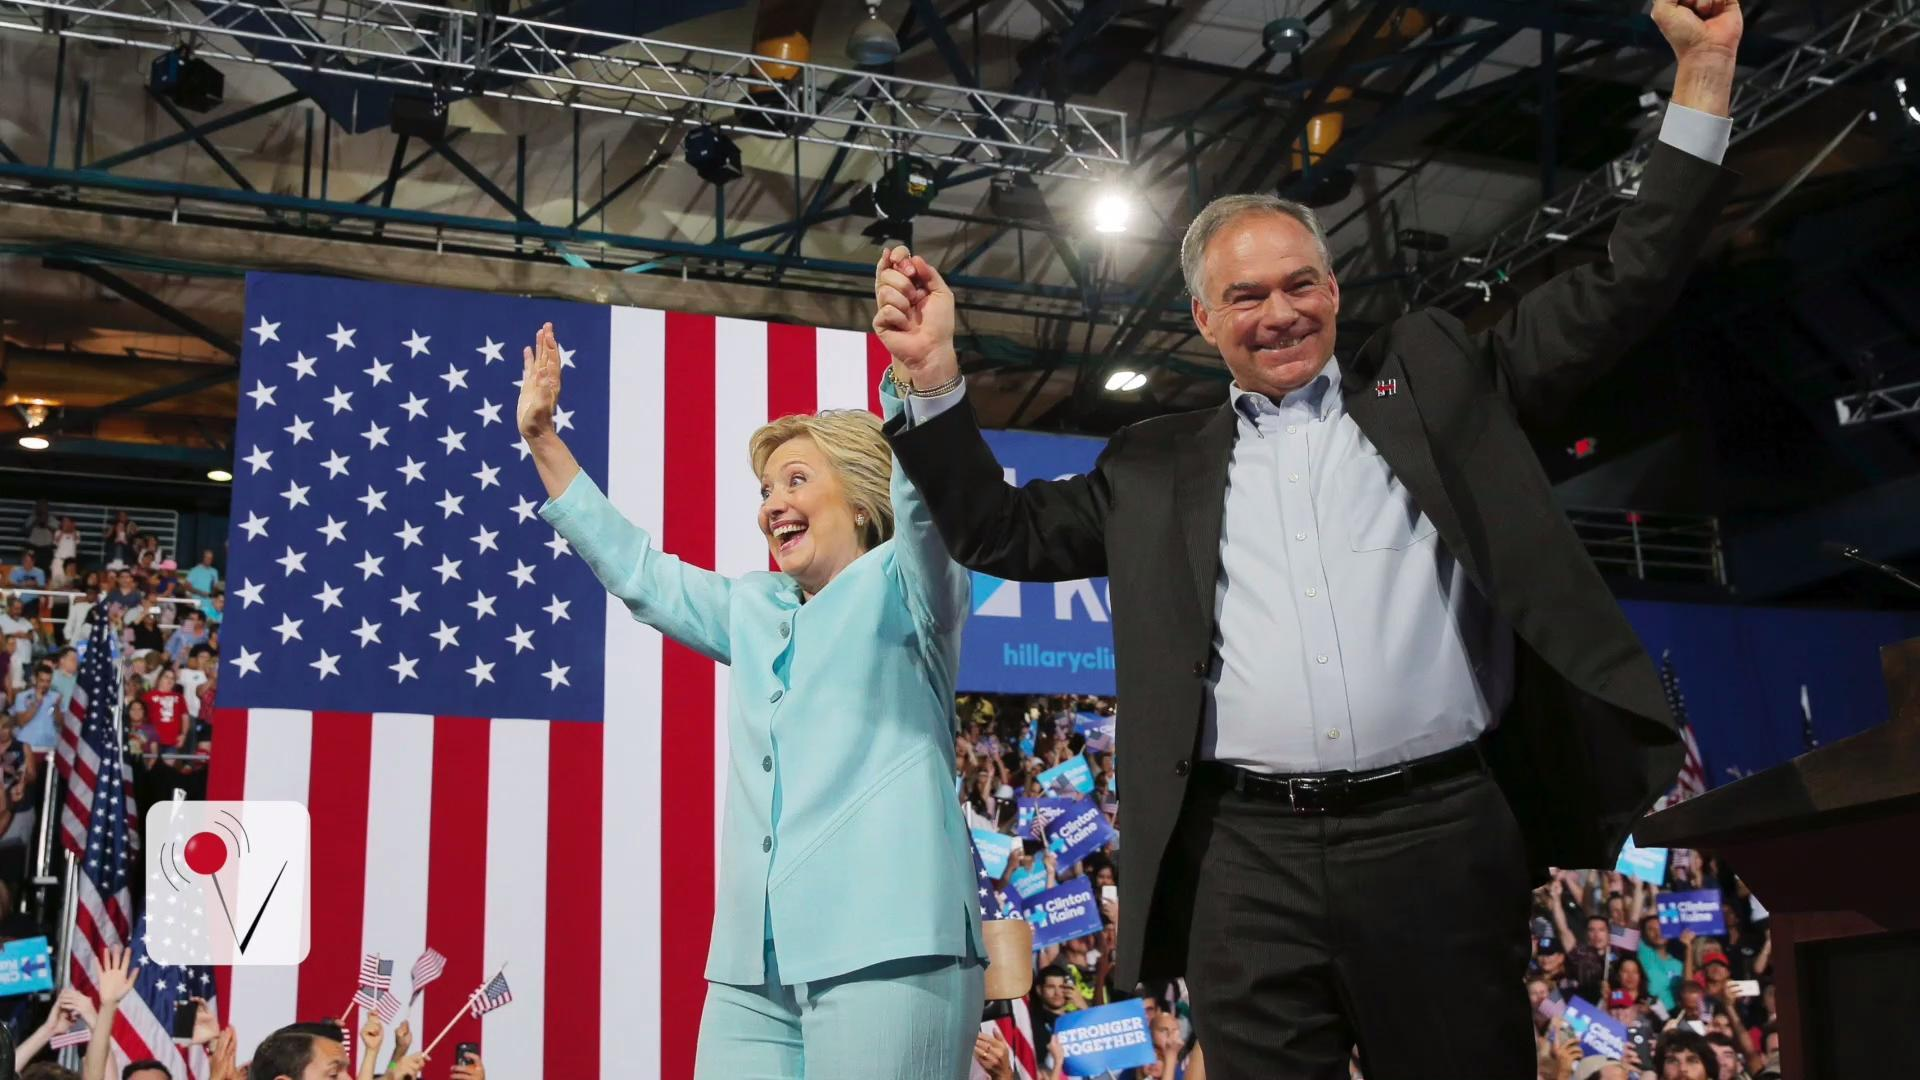 The Debut of the 2016 Democratic Ticket